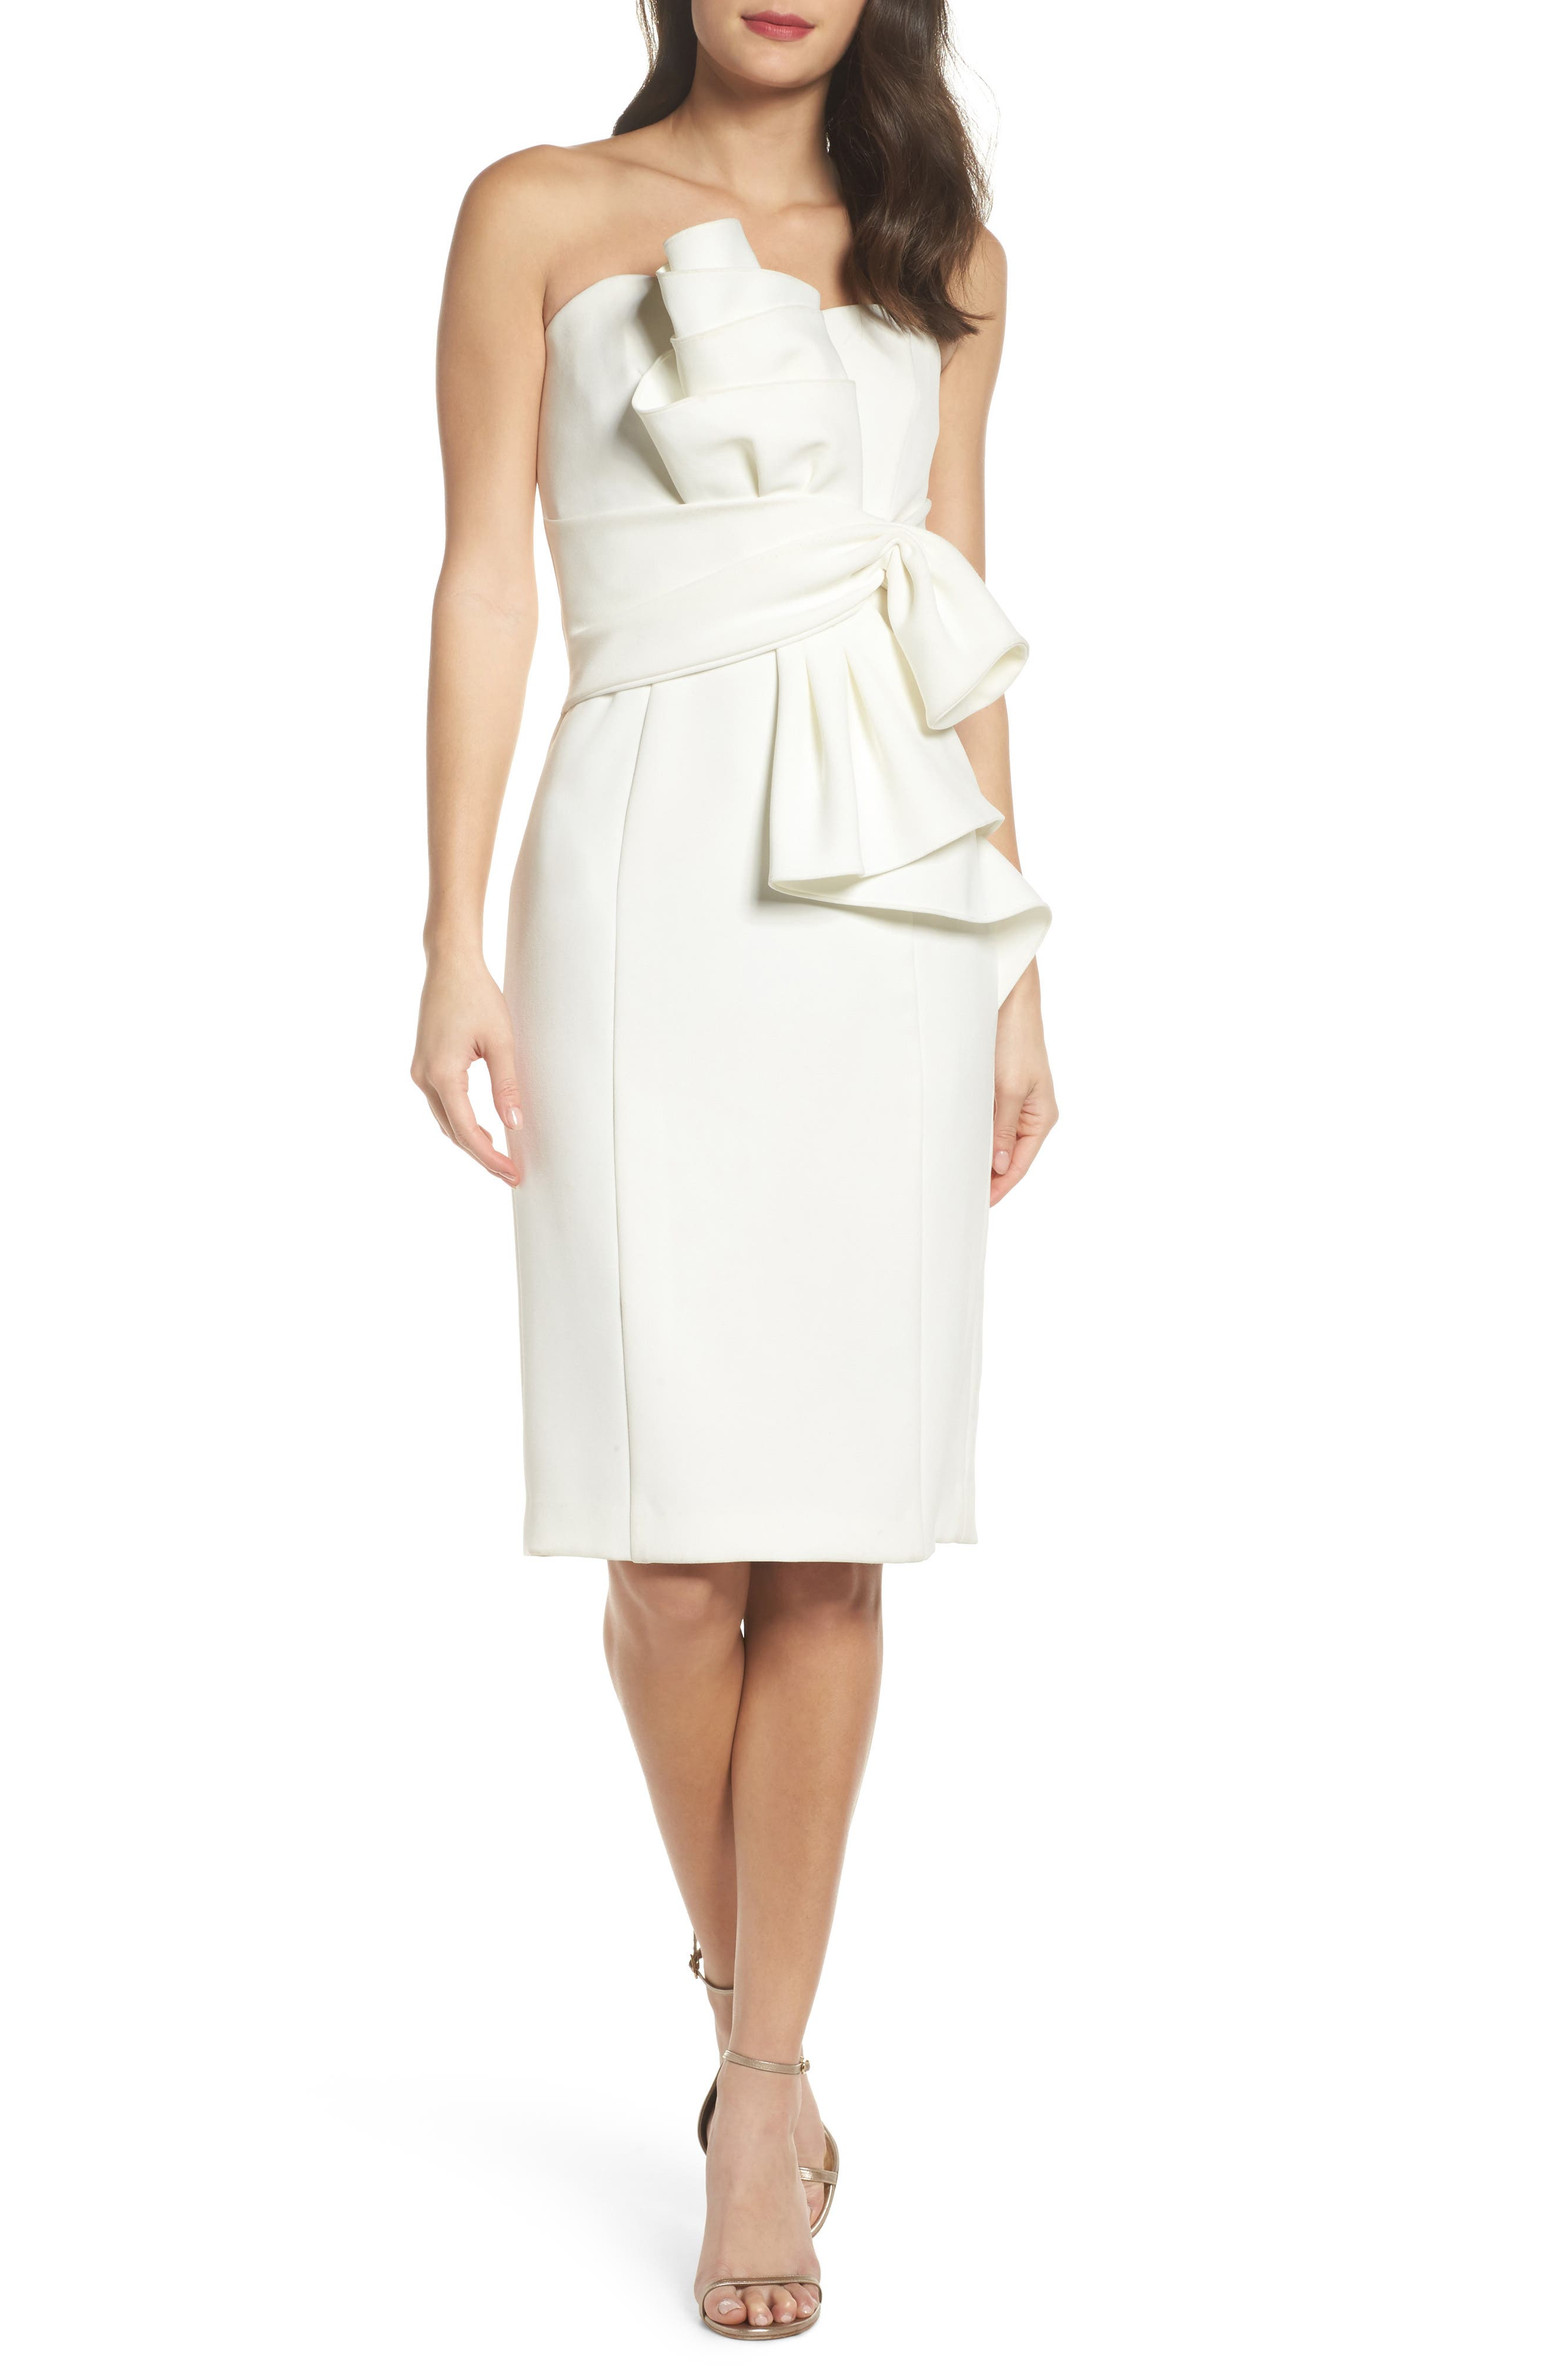 Sculpture Flower Cocktail Dress,                         Main,                         color, Ivory